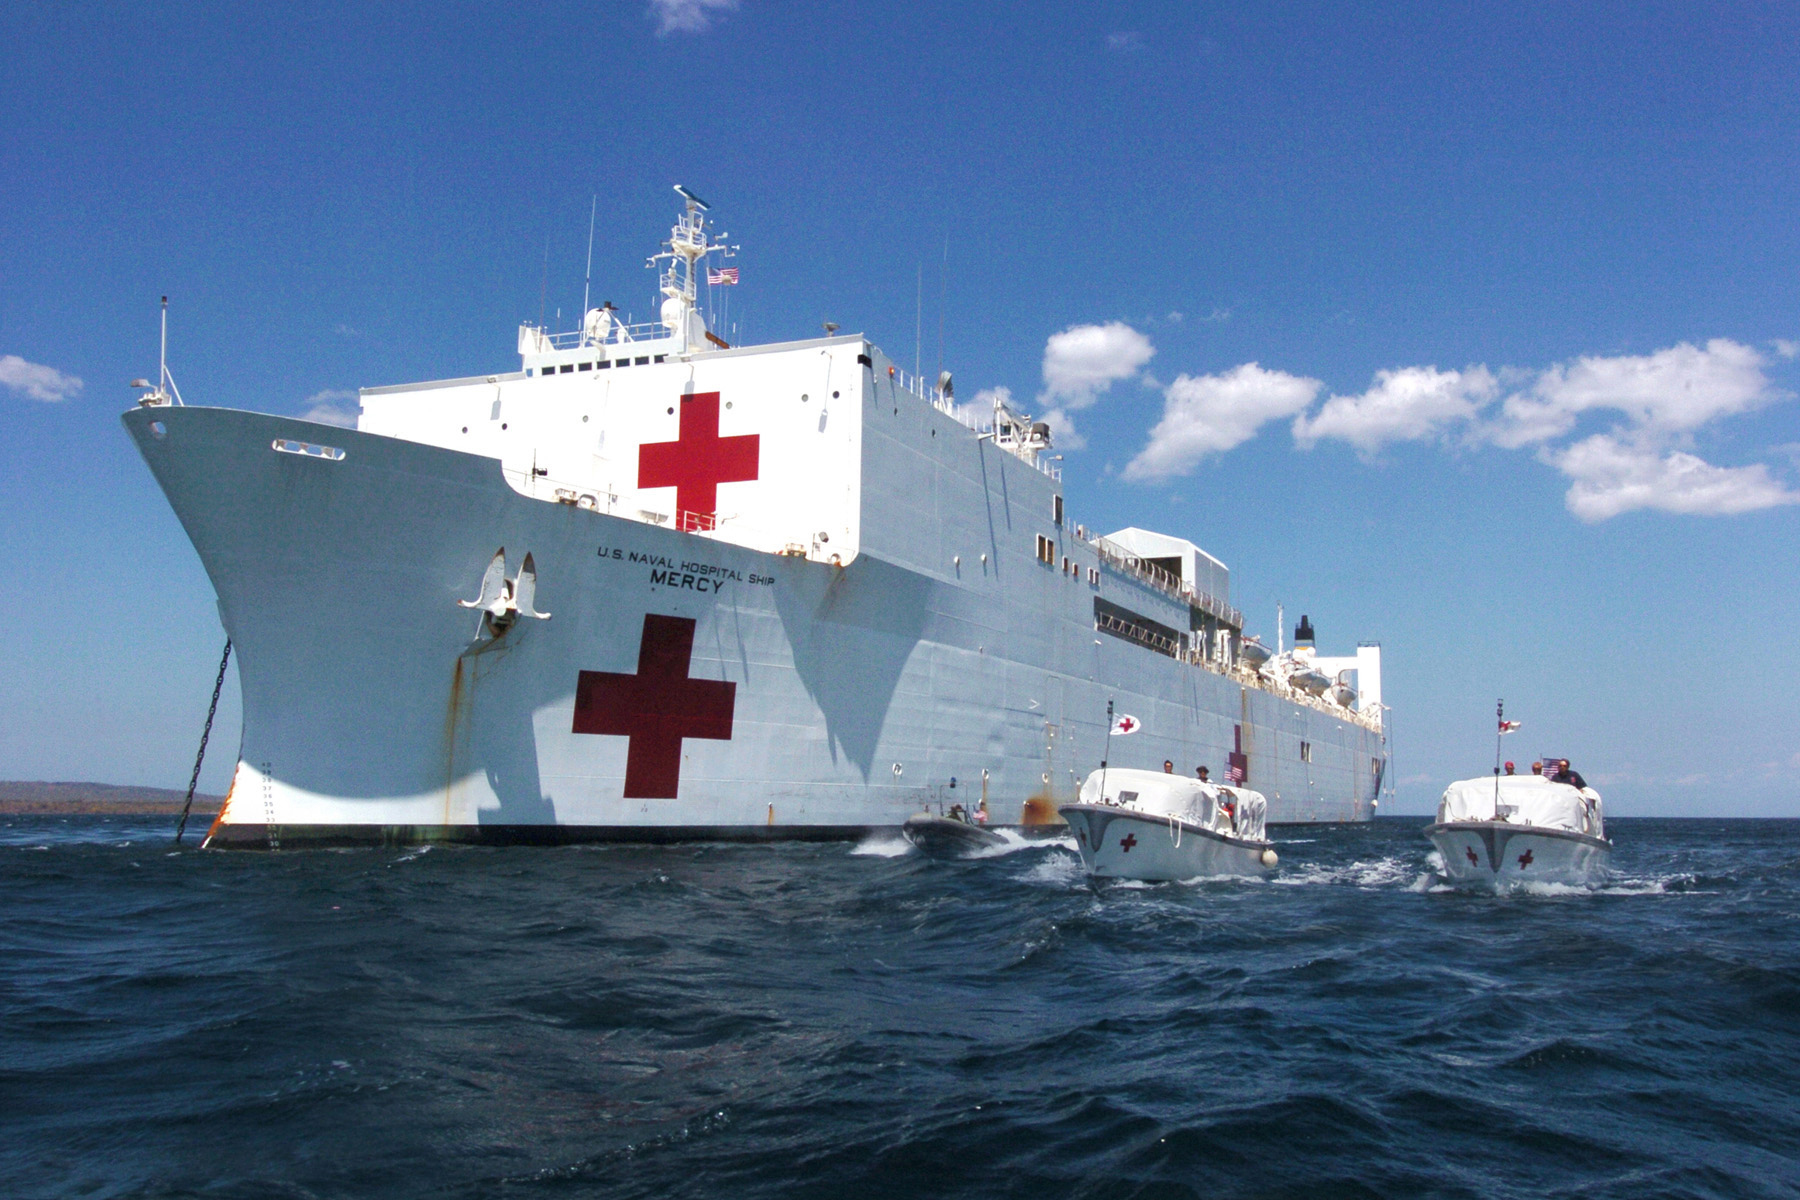 U.S. Navy Selects Carestream's Medical Image Management System for.